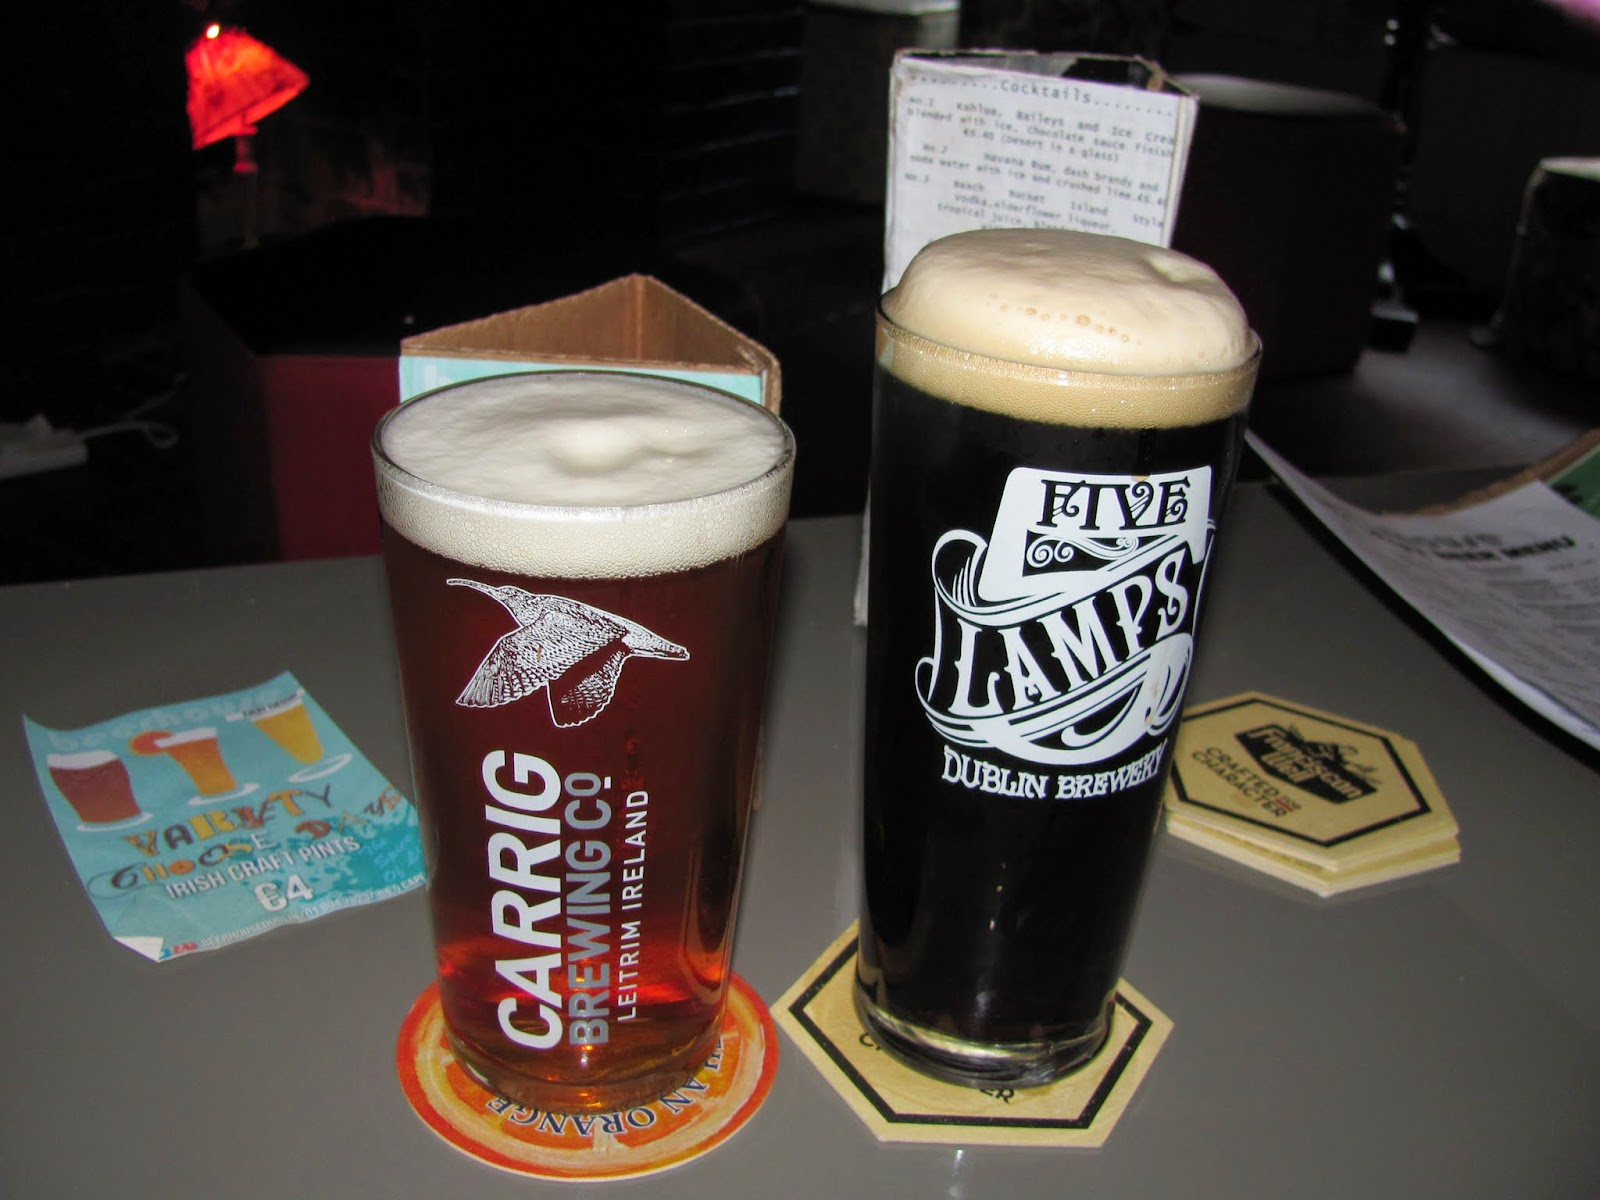 Carrig IPA and Five Lamps Porter at Beerhouse Dublin